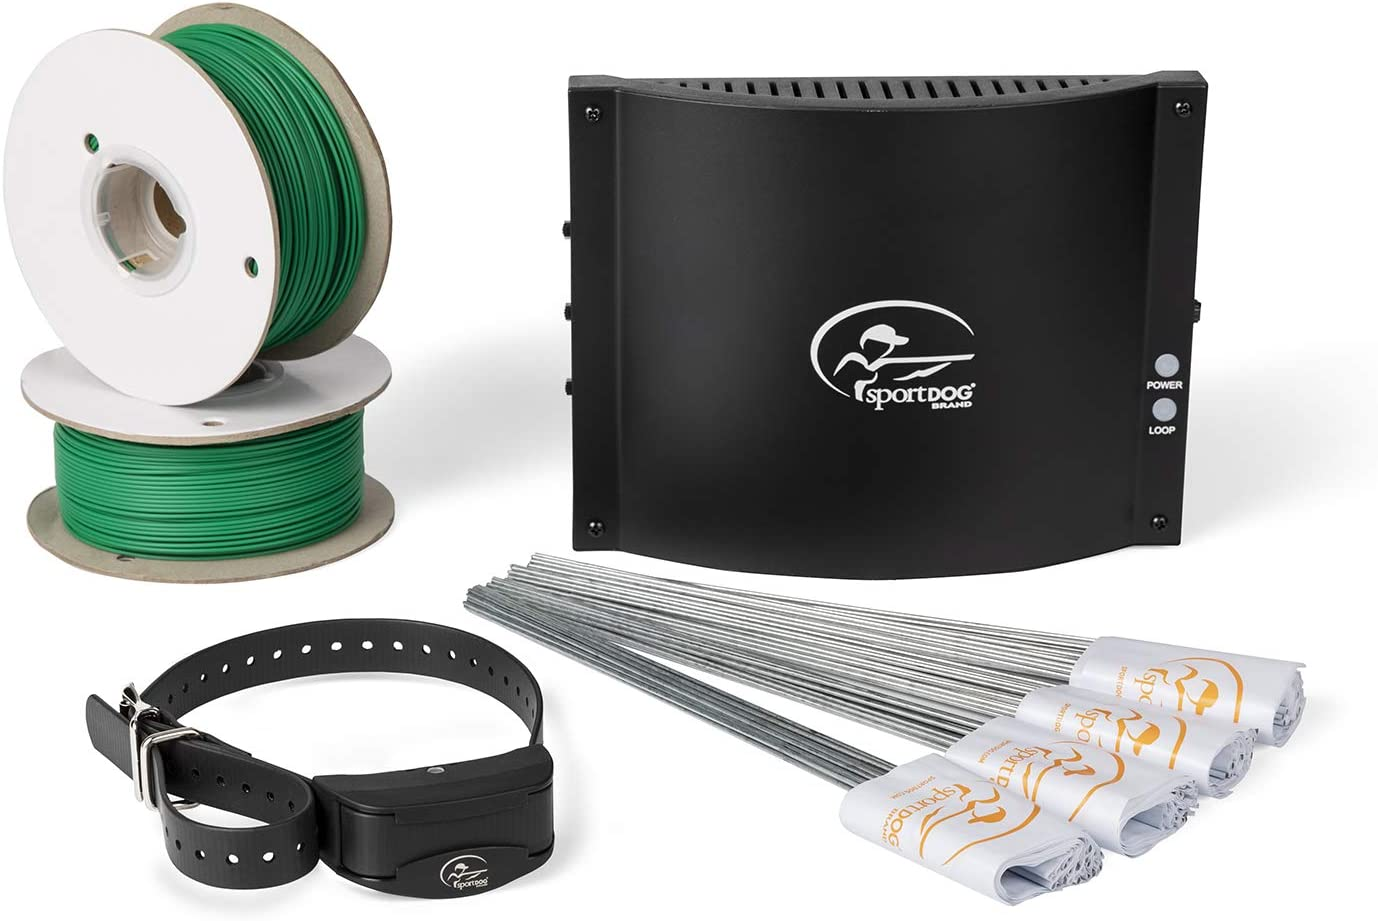 SportDOG Brand In-Ground Fence Systems – from the Parent Company of INVISIBLE FENCE Brand - Underground Wire Electric Fence - Tone, Vibration, & Static - 100 Acre Capability - Remote Trainer Option